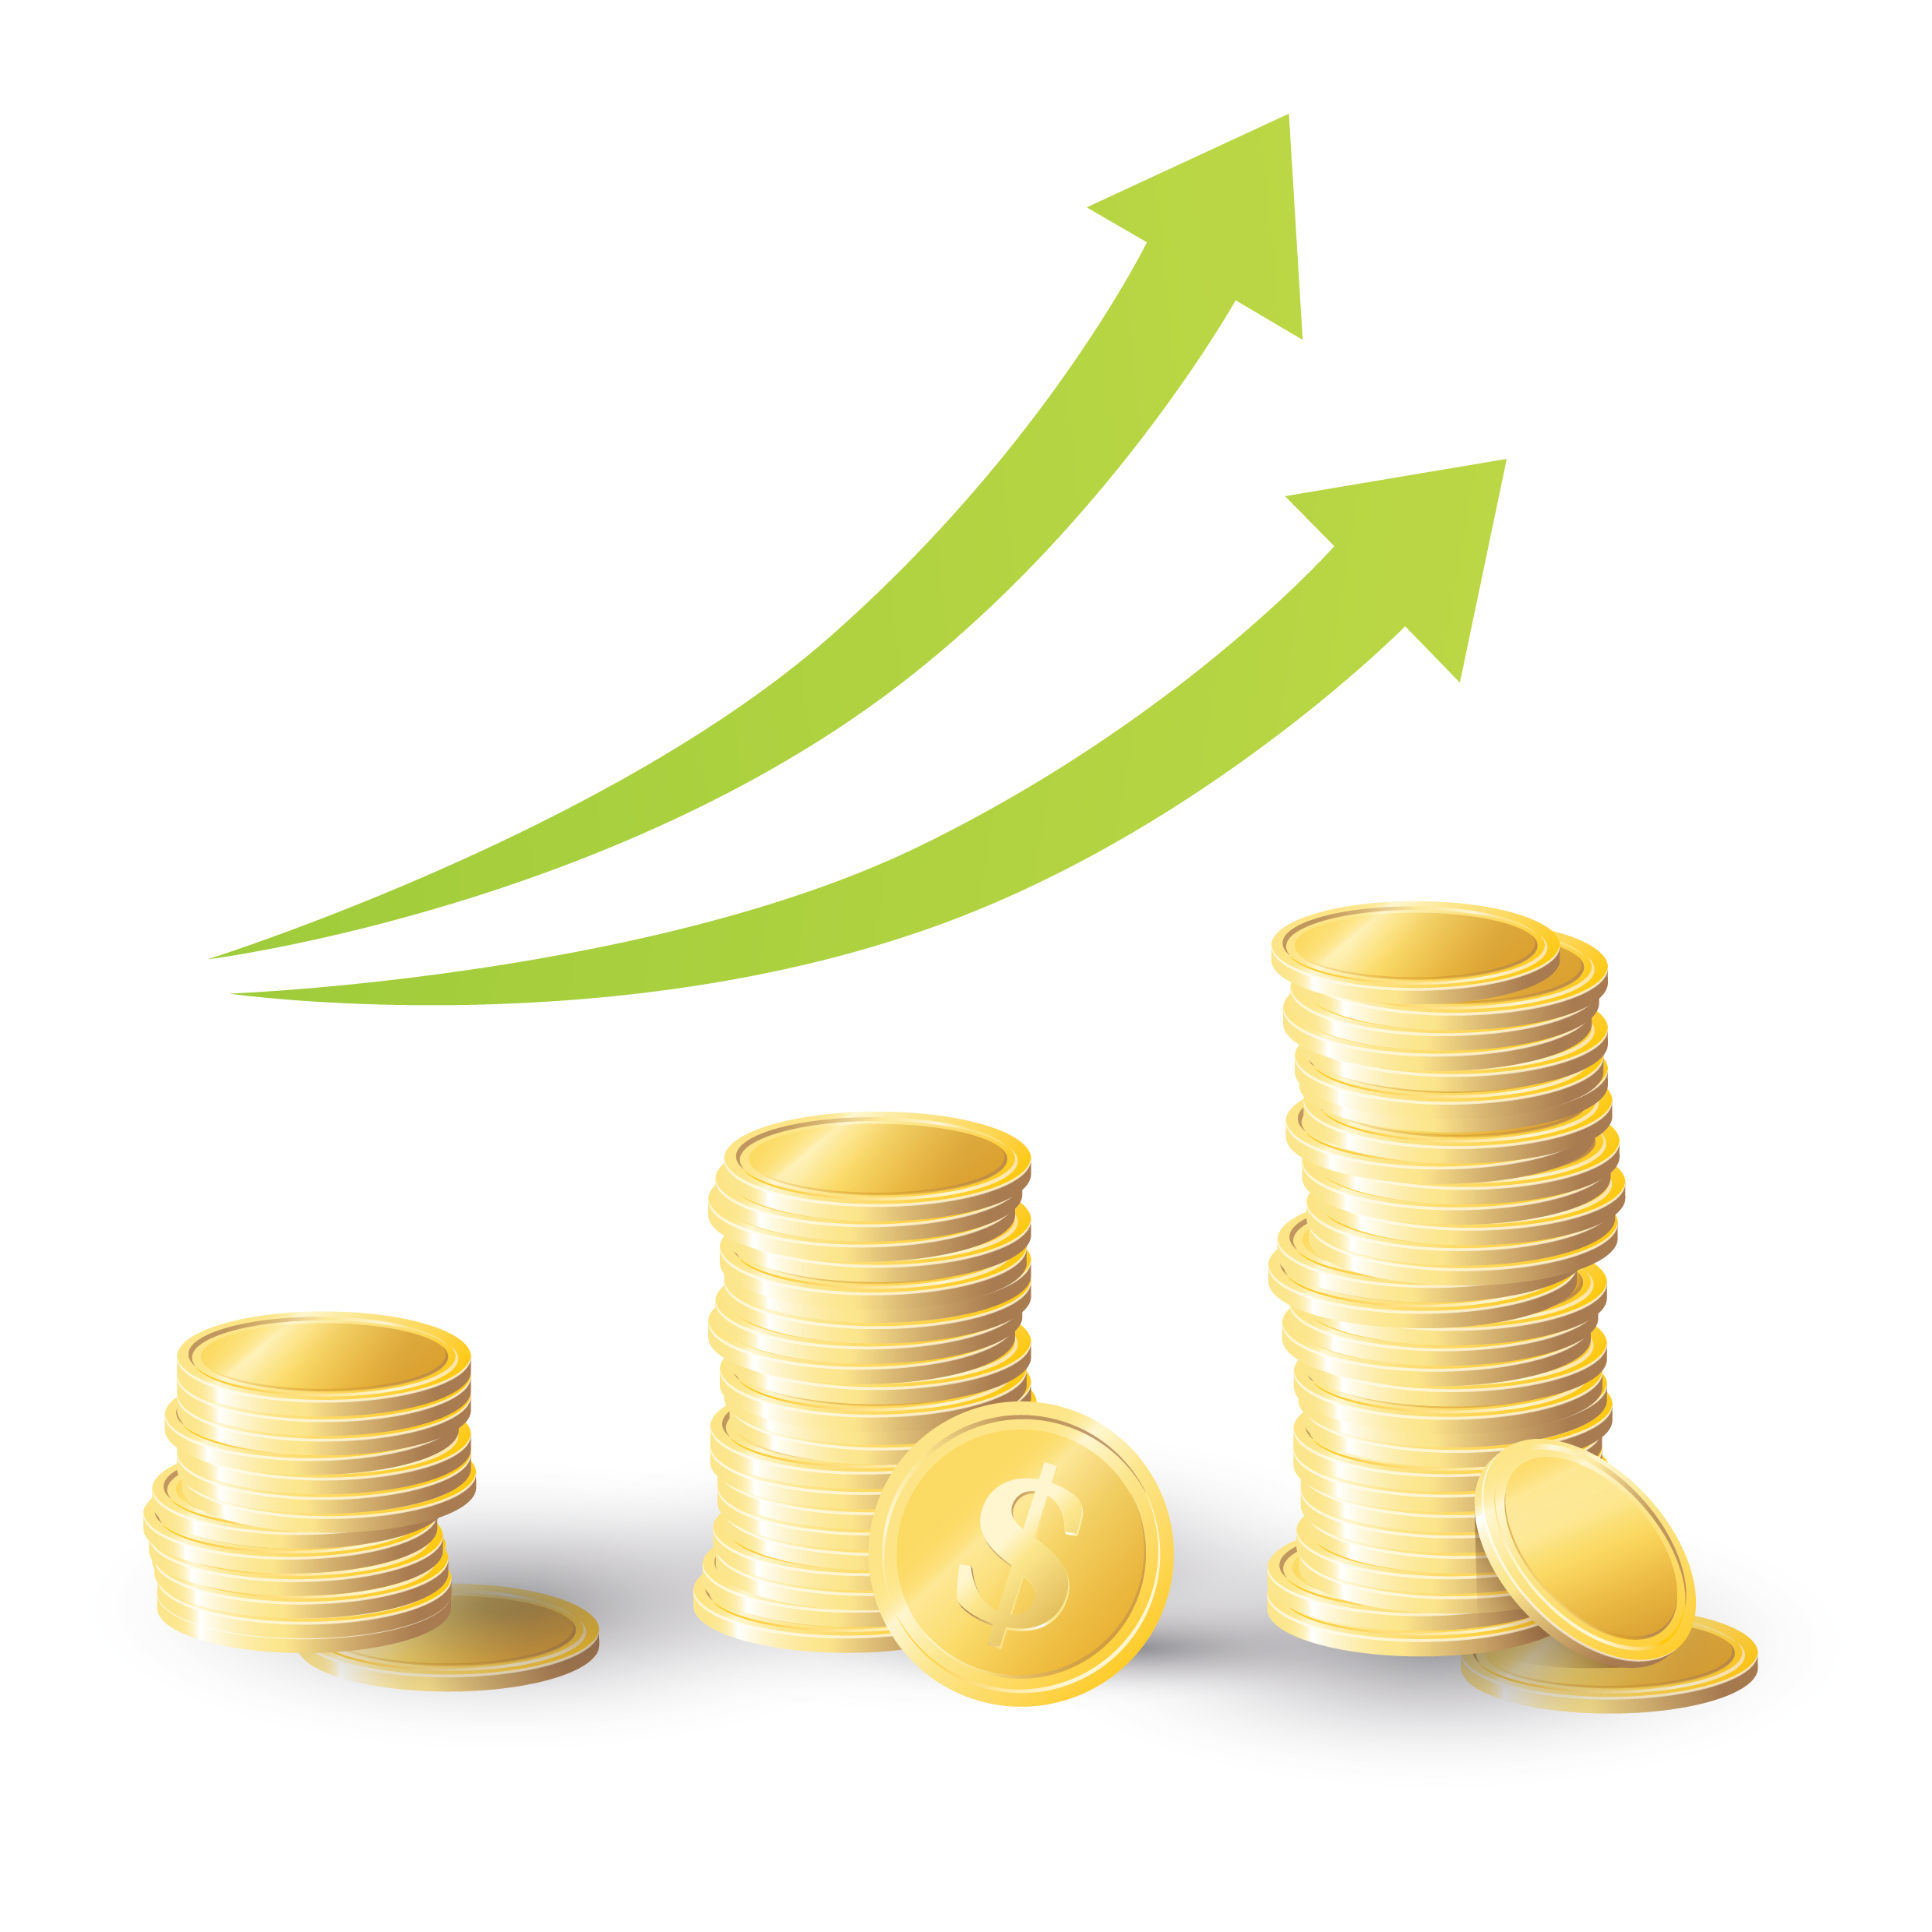 Look for ways to increase the value of your offering? Including digital solutions can be an obvious solution than can open new revenue streams.